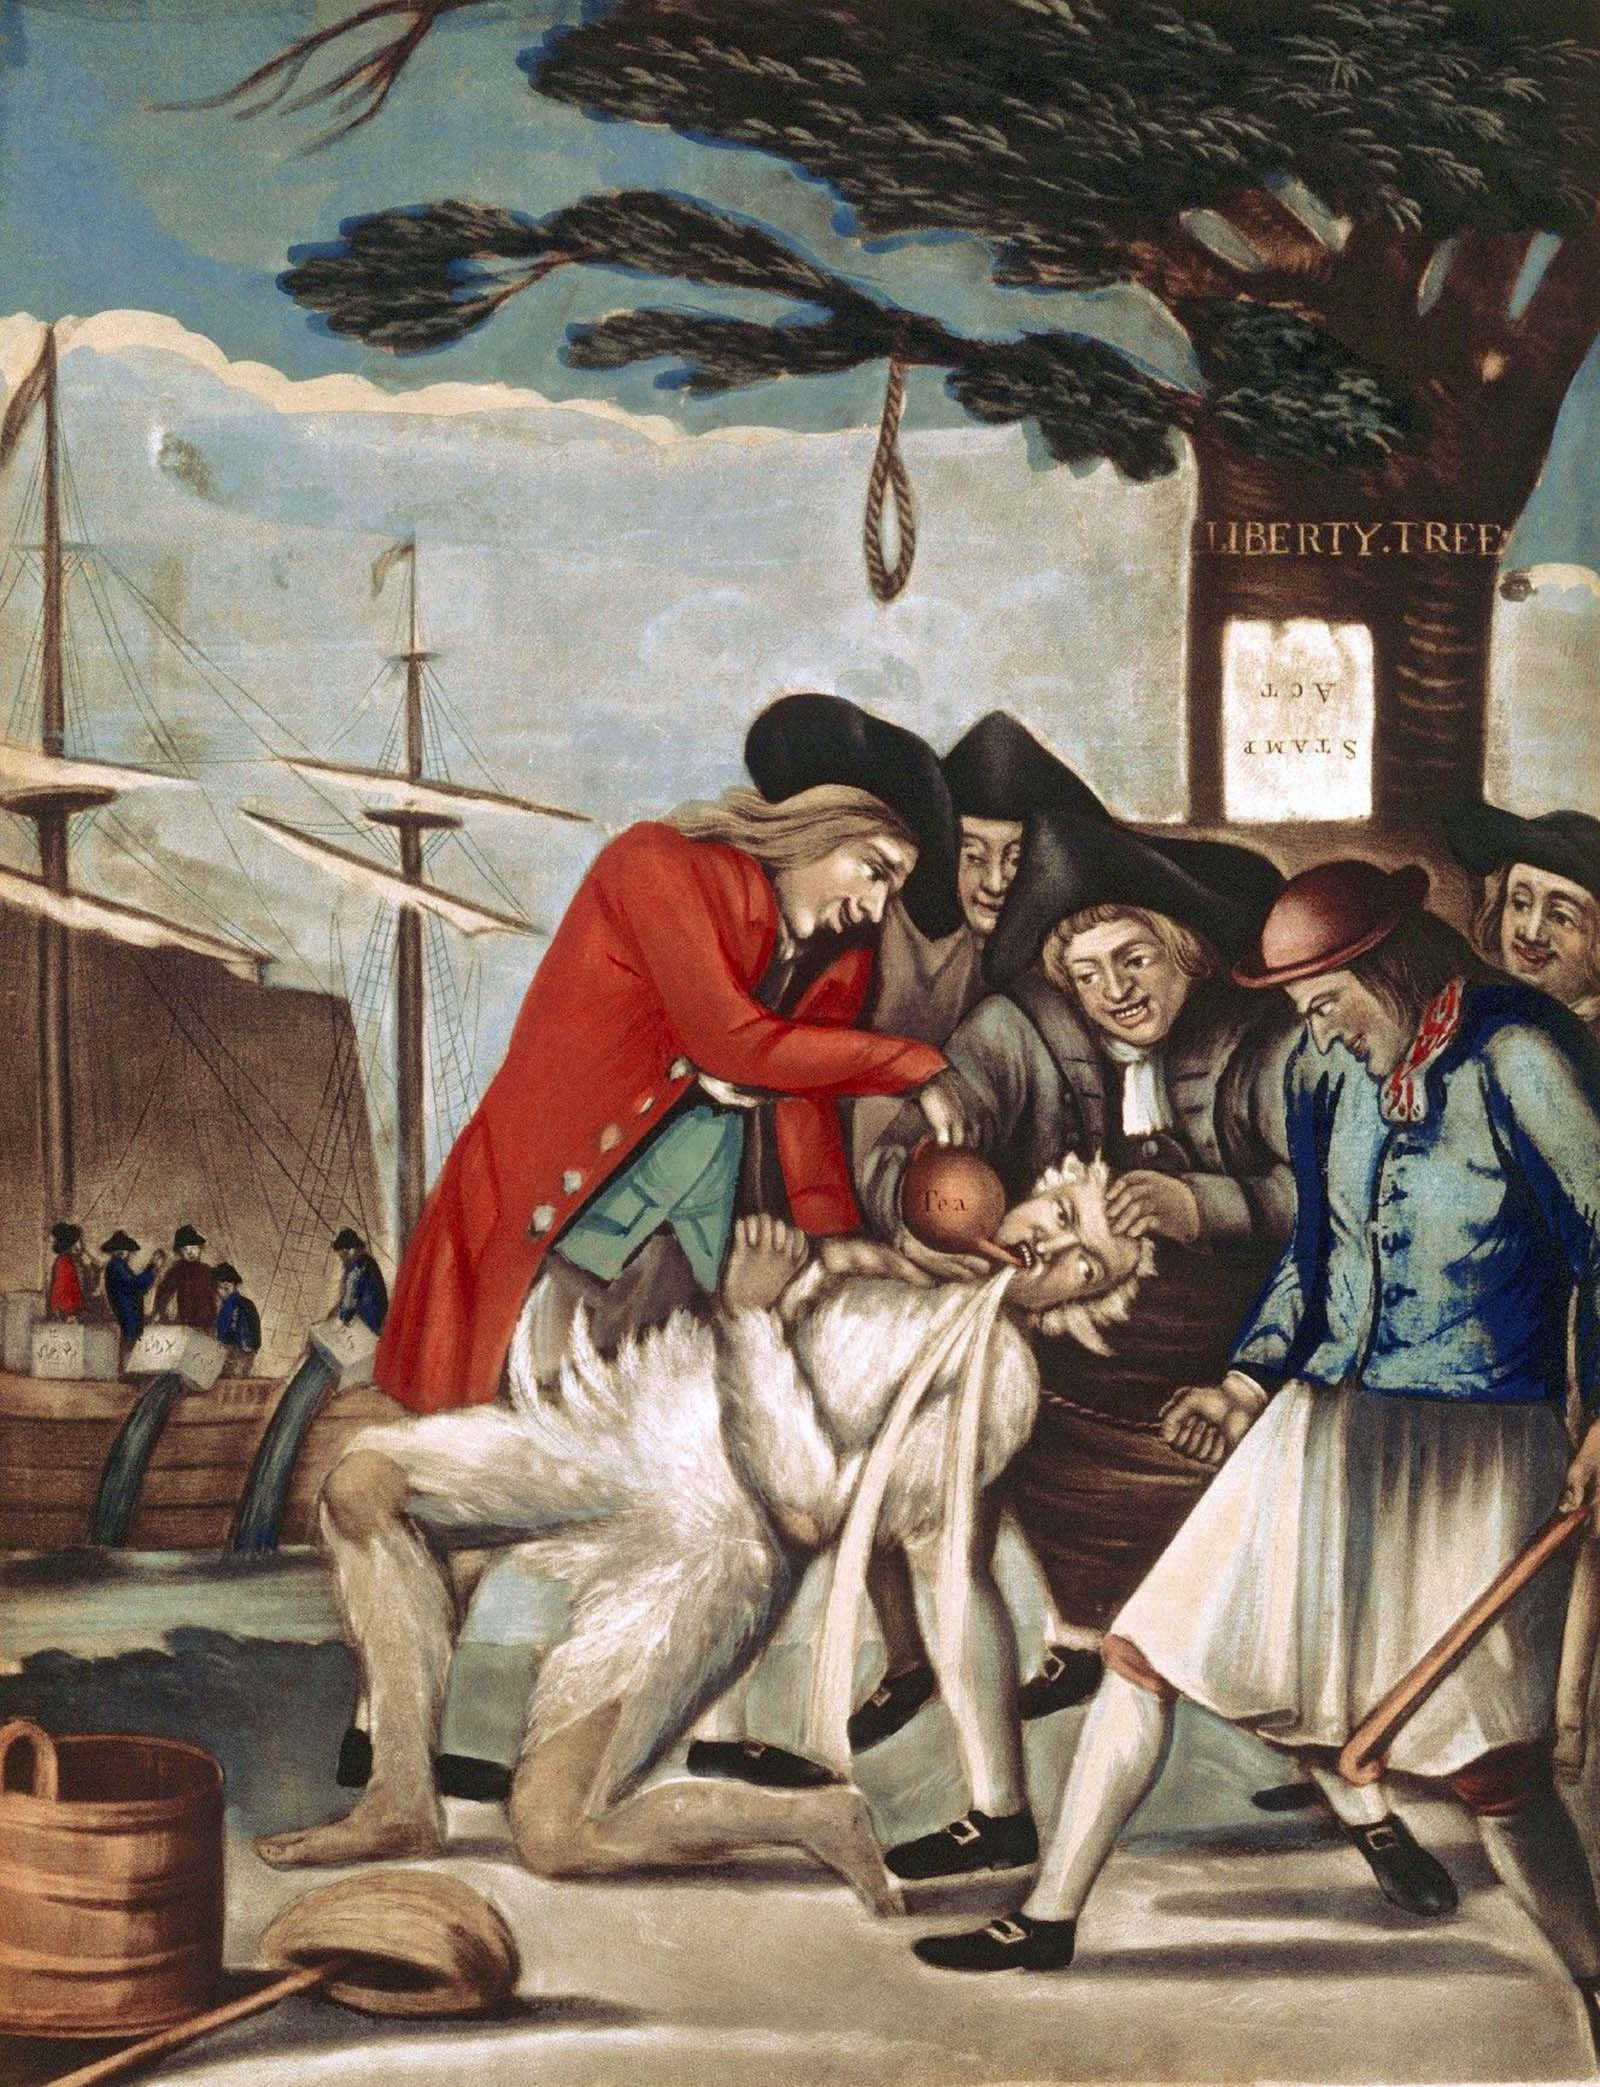 Paying the Excise Man by Philip Dawe, 1774